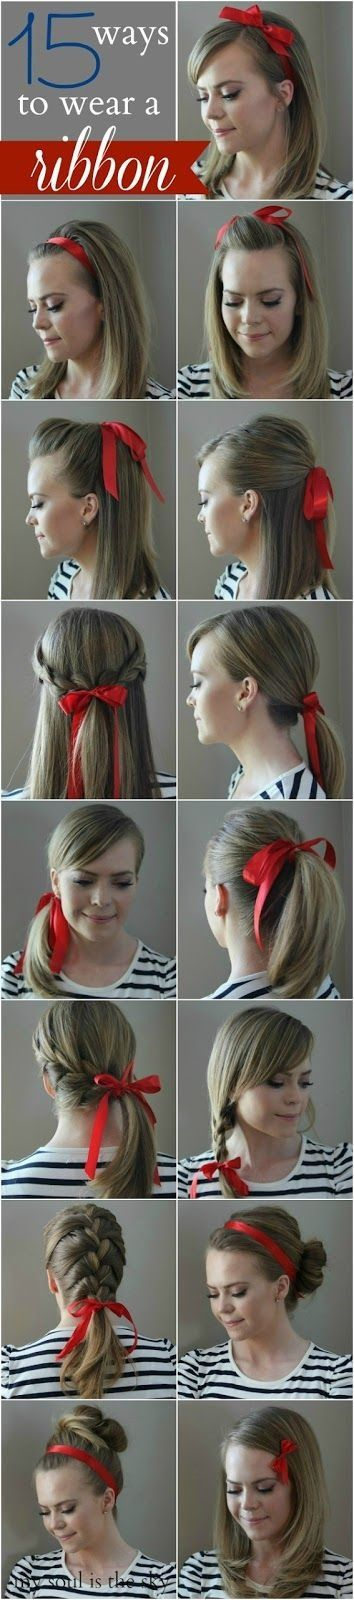 Different hairstyles with a bow